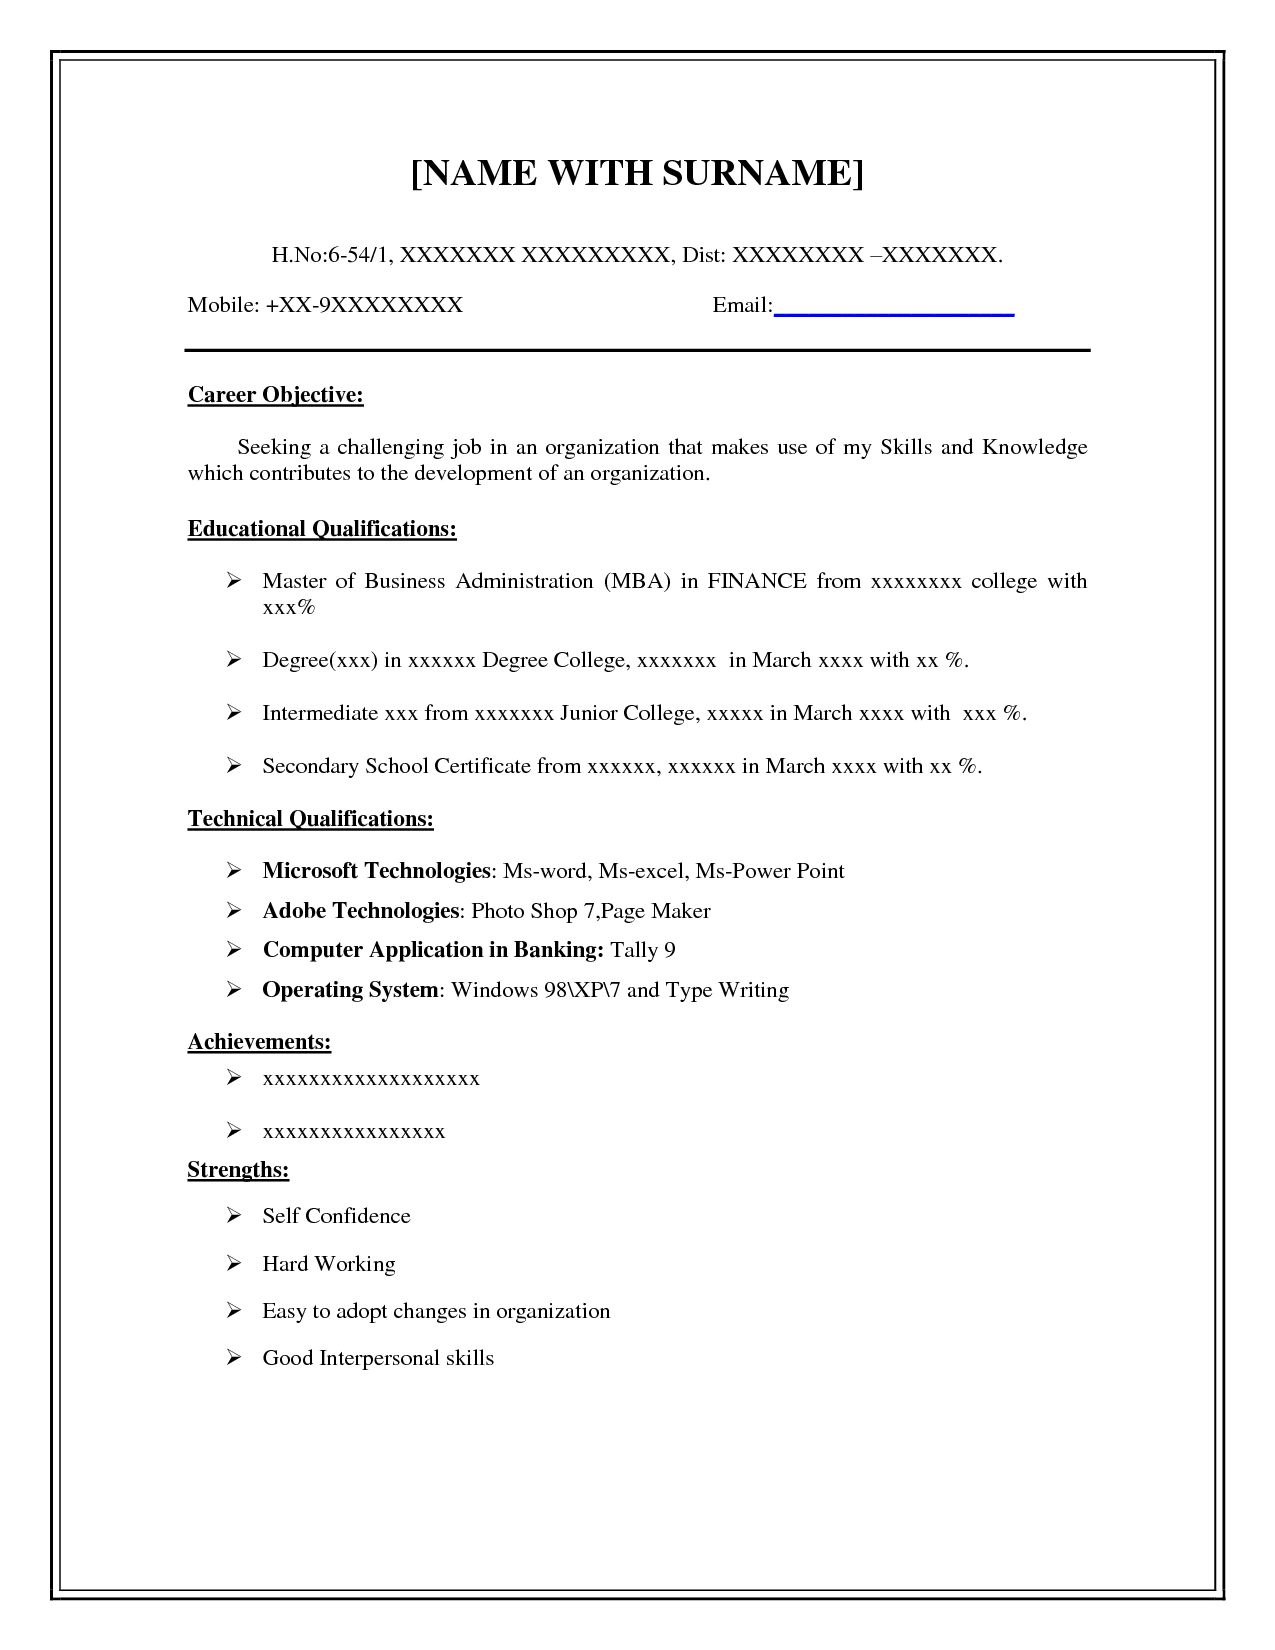 Easy And Free Resume Templates Freeresumetemplates Resume Templates Basic Resume Simple Resume Template Resume Template Free